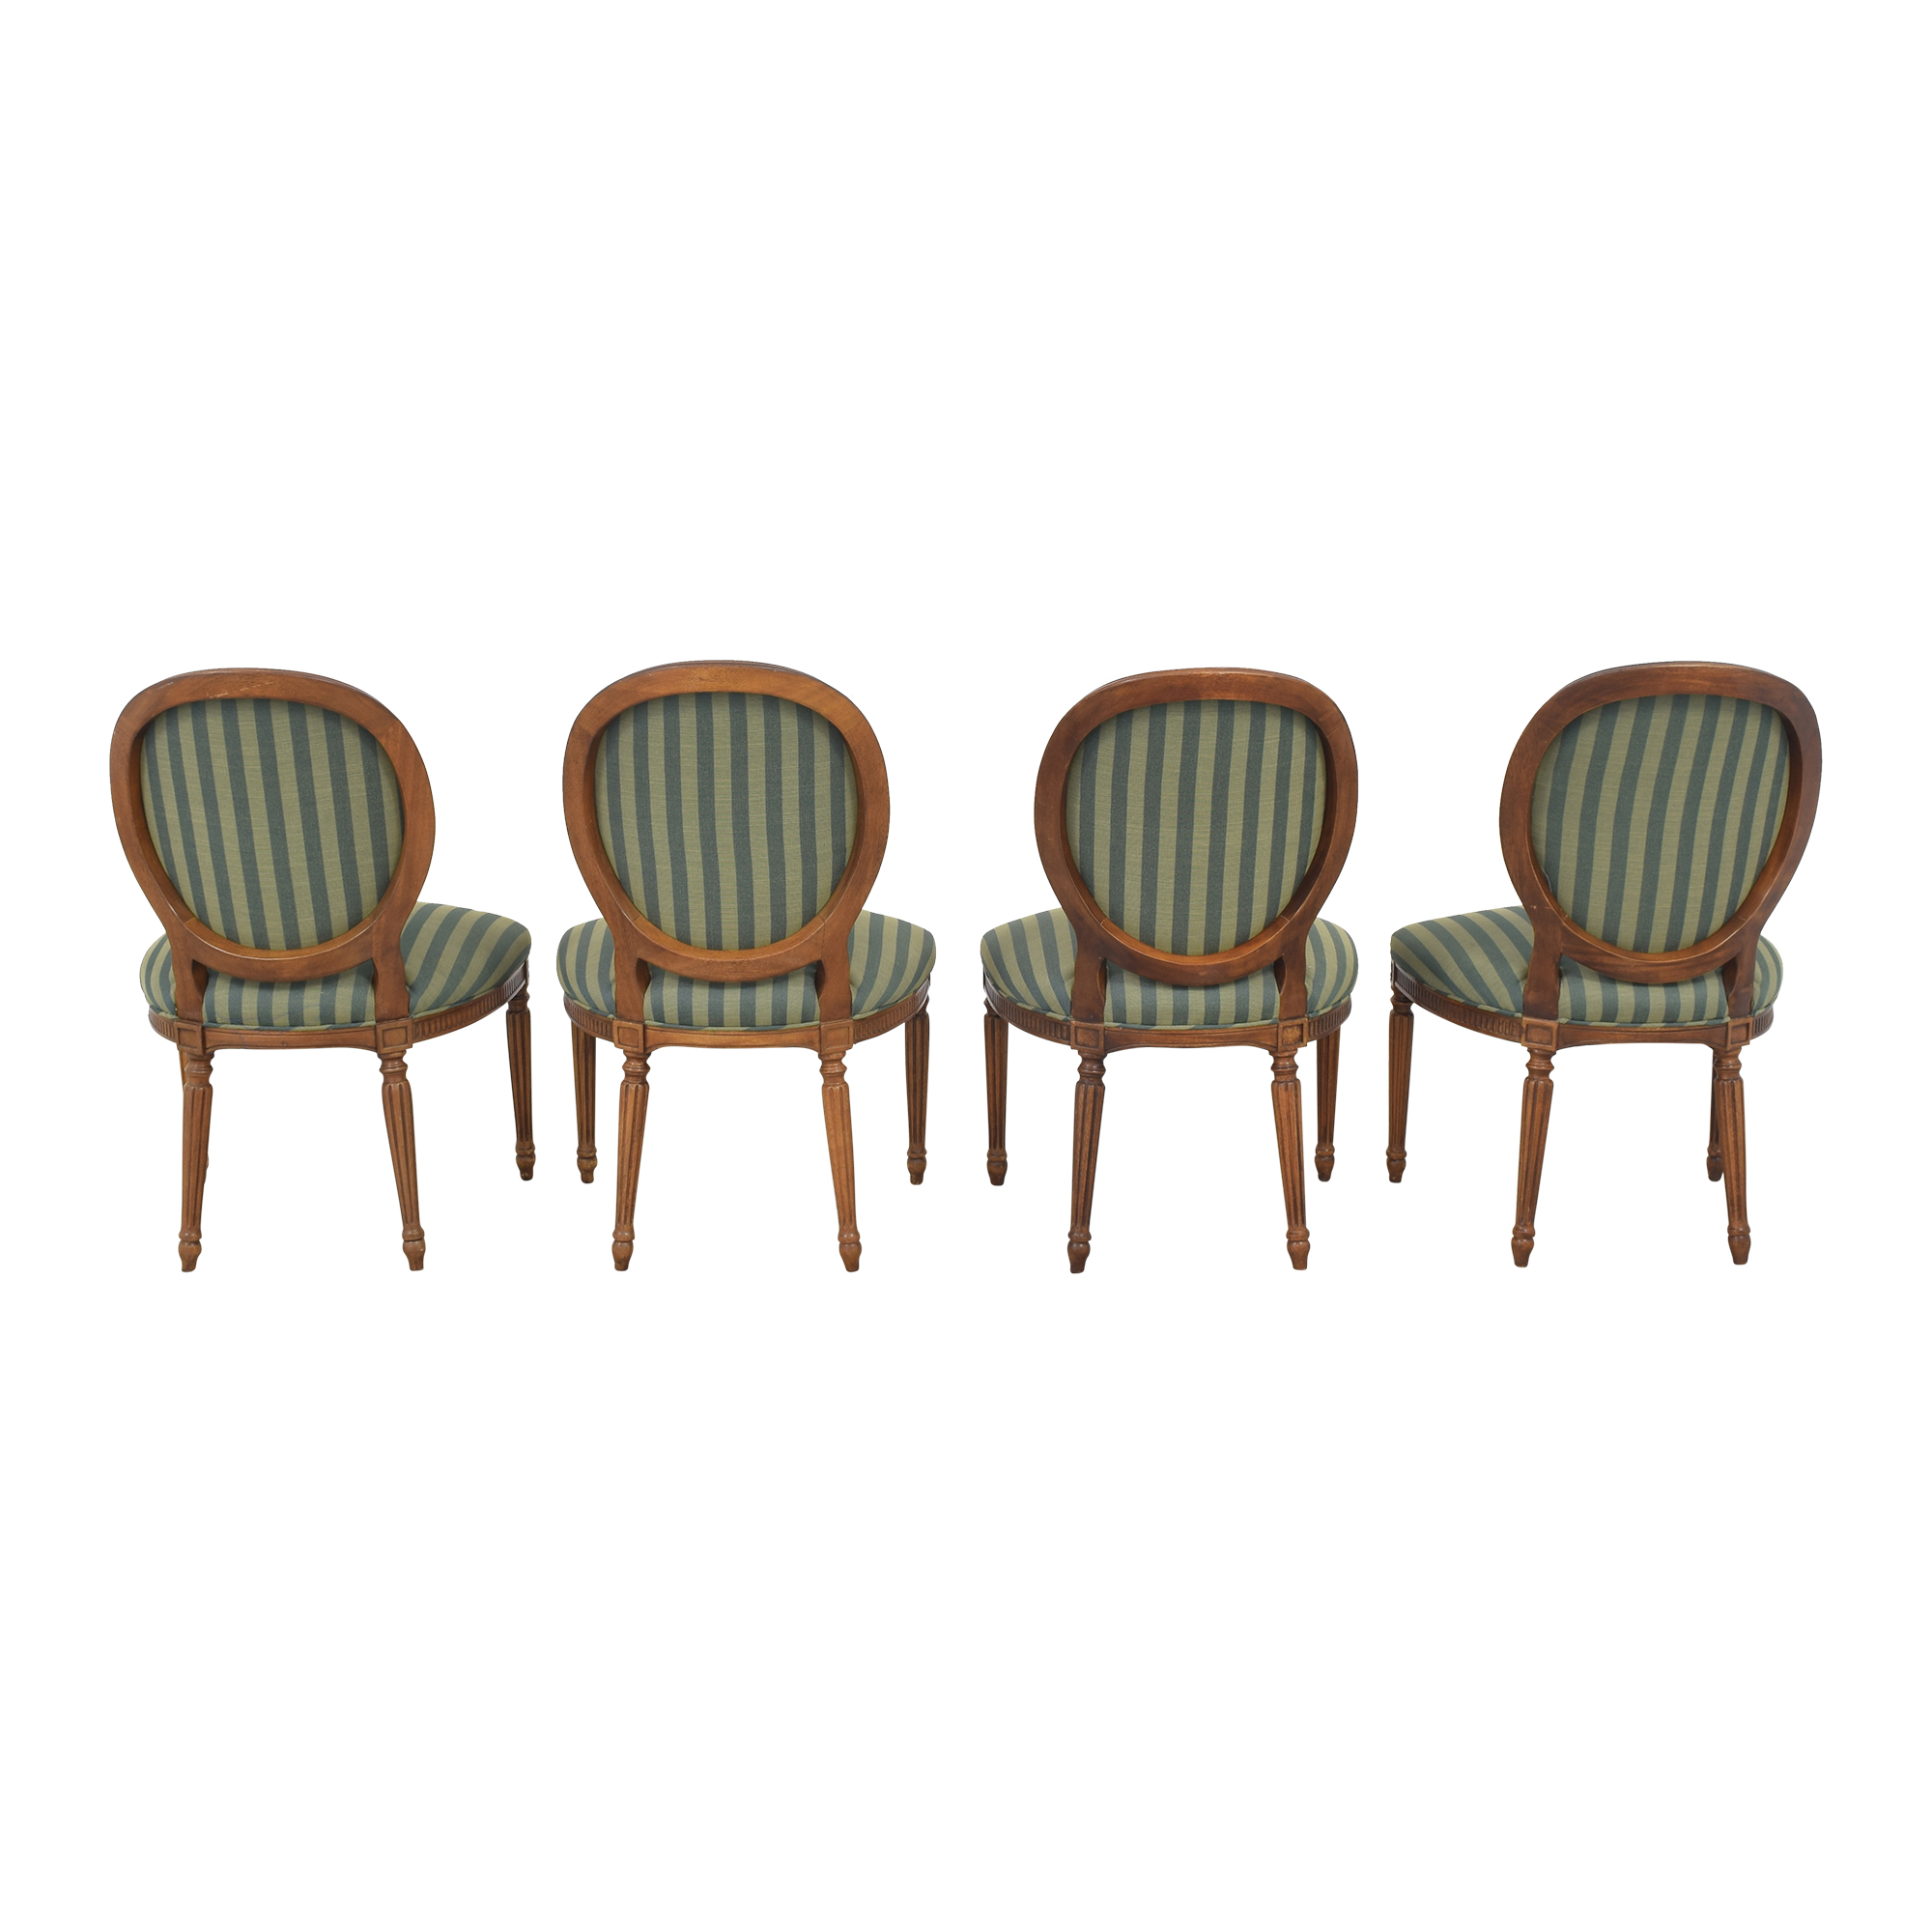 Hickory Chair Hickory Chair Medallion Back Dining Chairs on sale